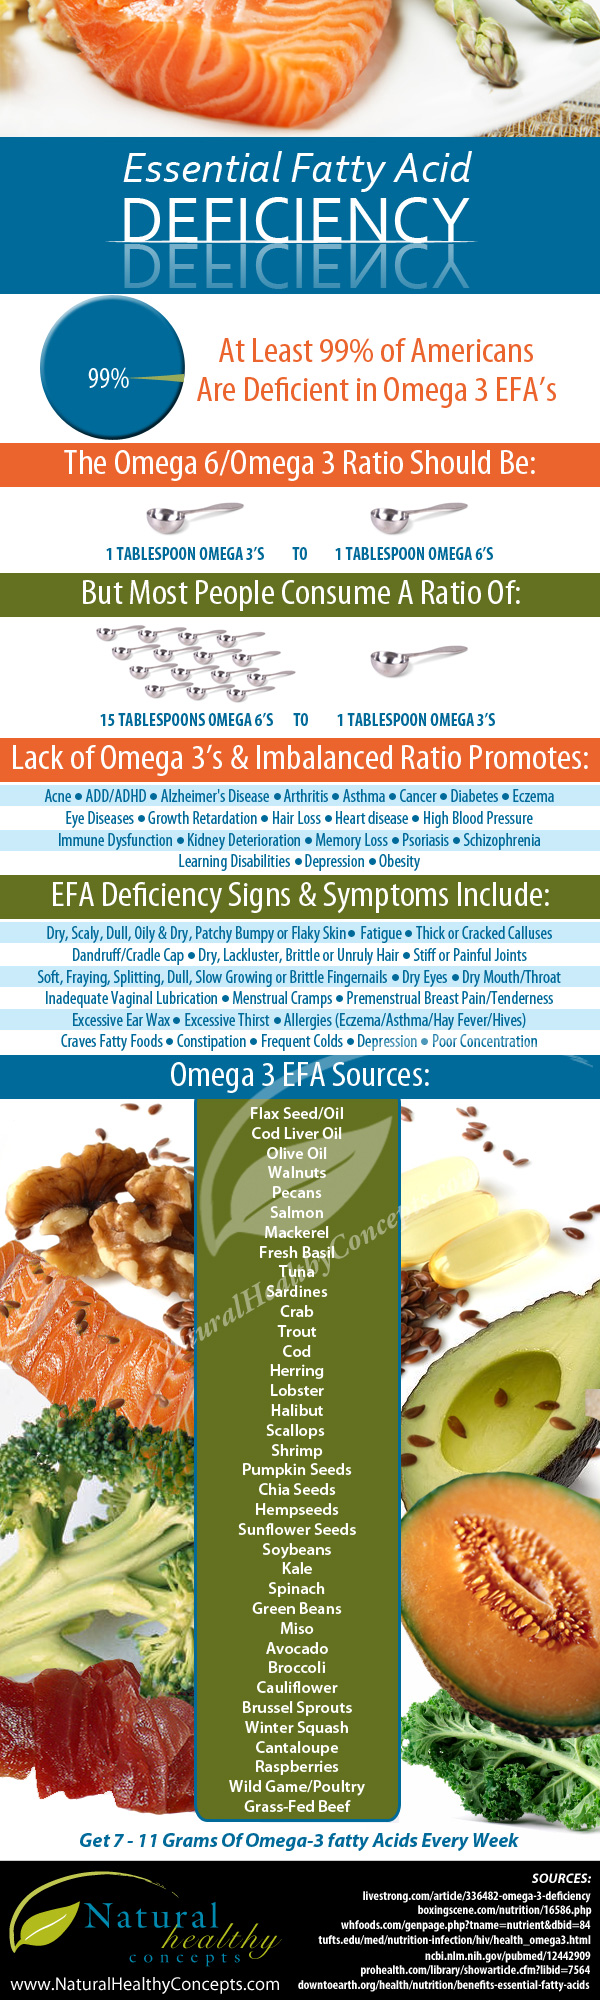 How To Fight With Essential Fatty Acid Deficiency Infographic